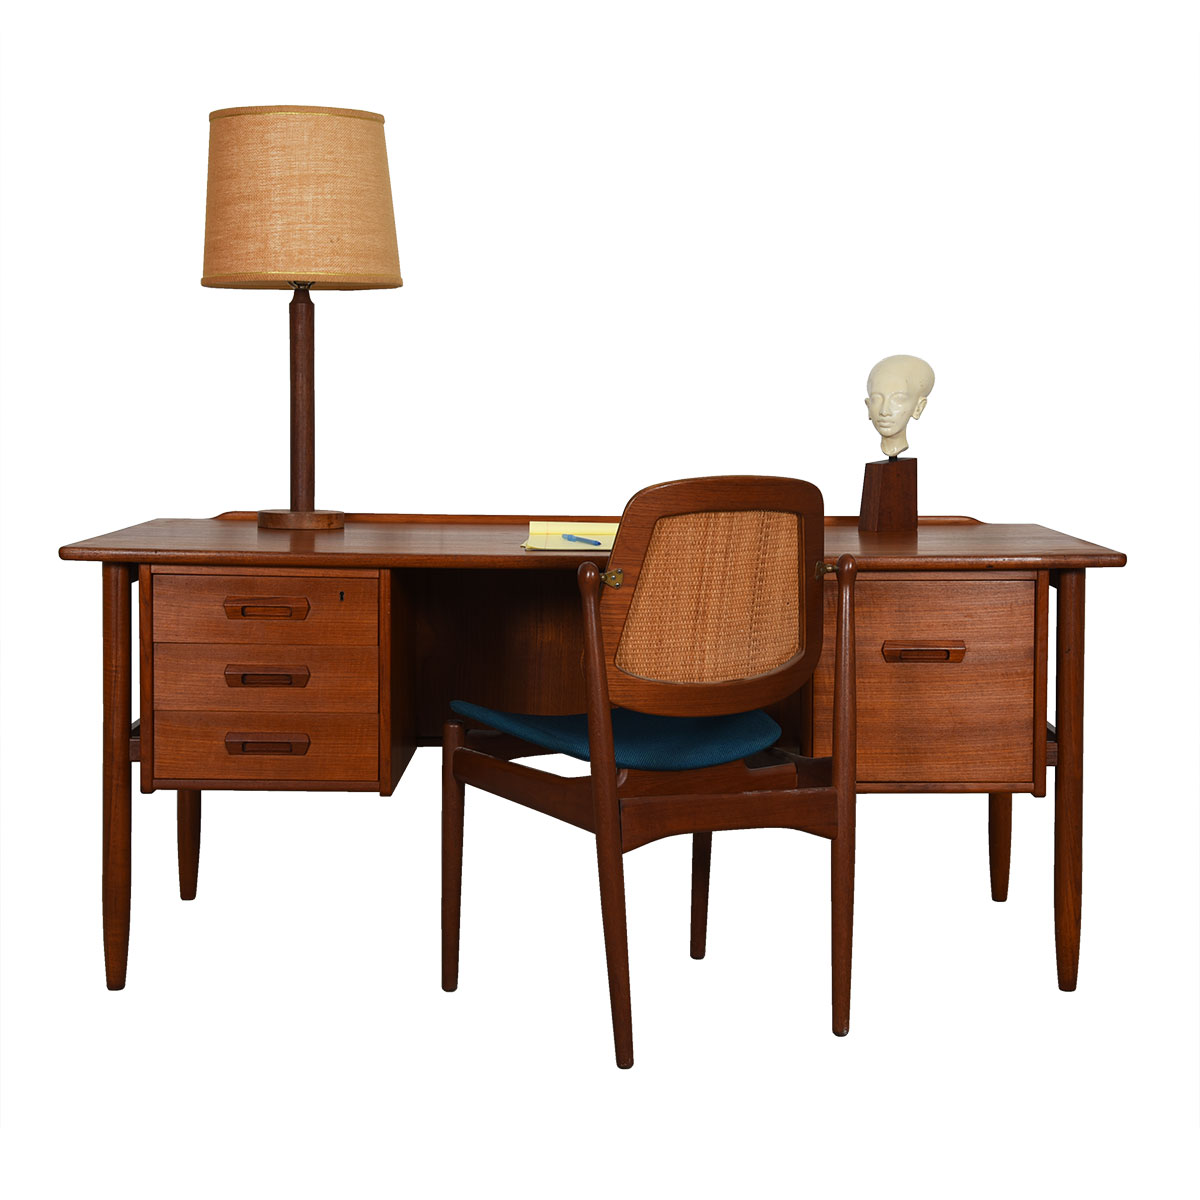 Danish Modern Teak Executive Desk w/ Sculpted Accents